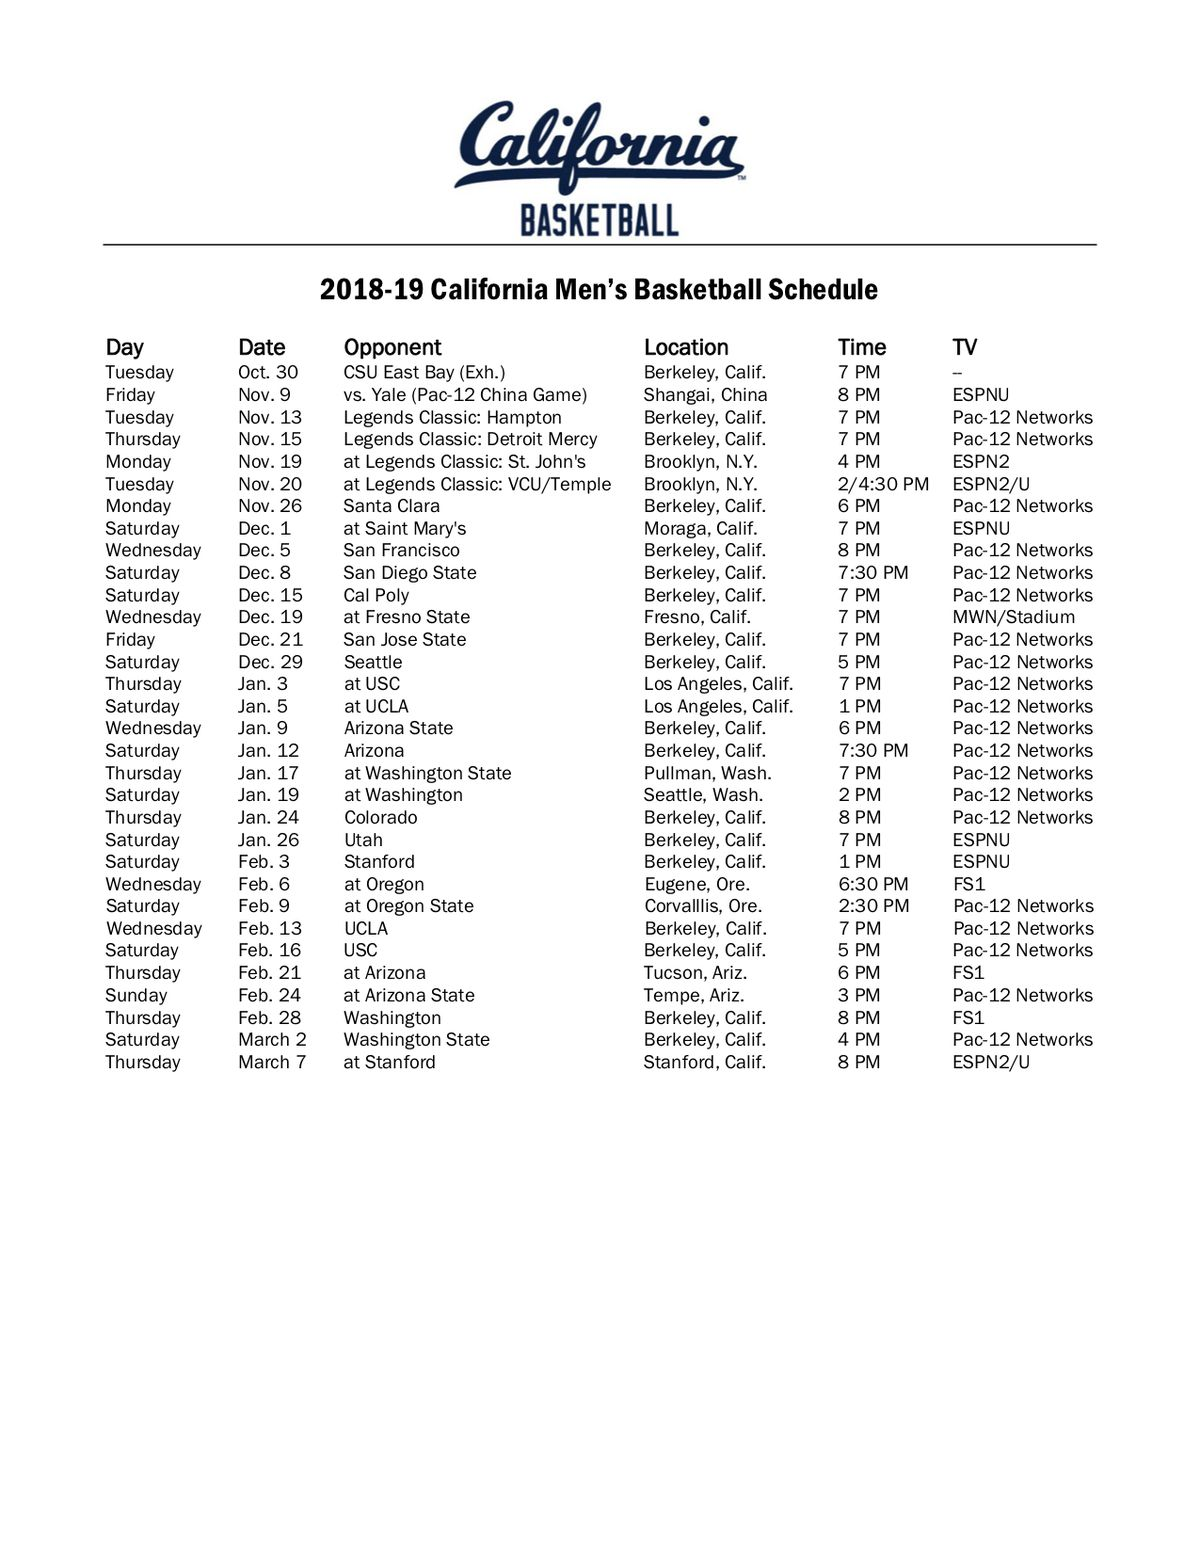 Cal MBB Pac-12 Schedule for 18-19 released! - California